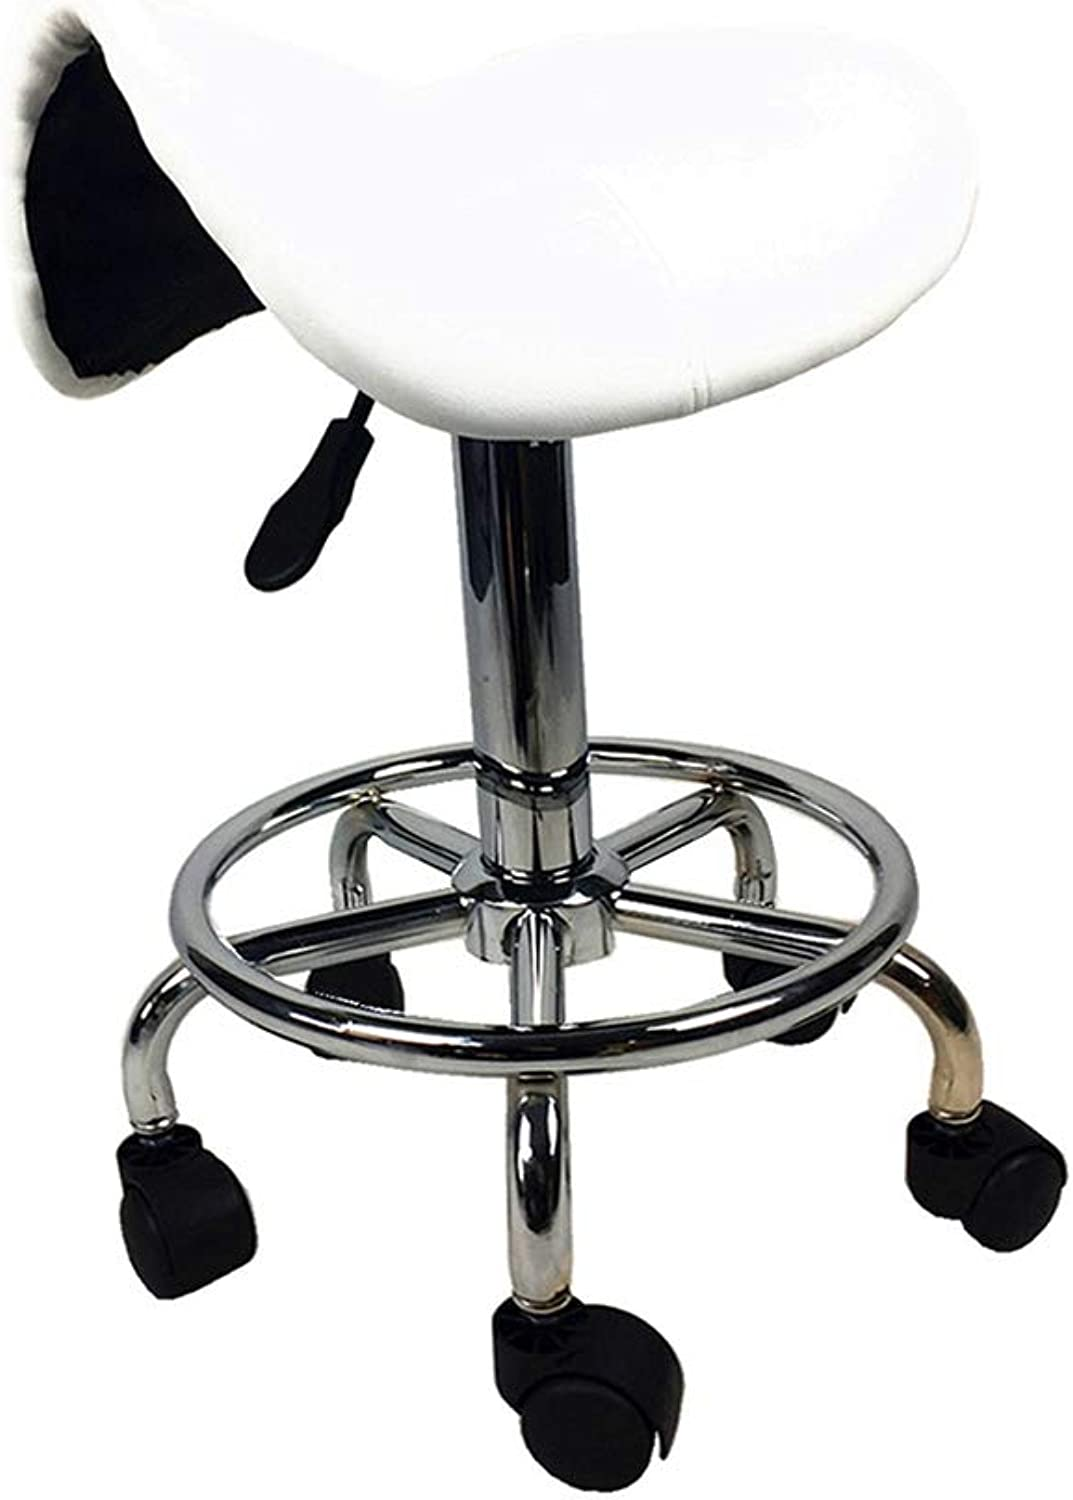 NYJS Bar Stool,Bar Chair Saddle Salon Massage Chair Adjustable Swivel Hydraulic Gas Lift Ergonomic Stool for Hairdressing Manicure Beauty Massage Spa Salon,Black,White (color   White)